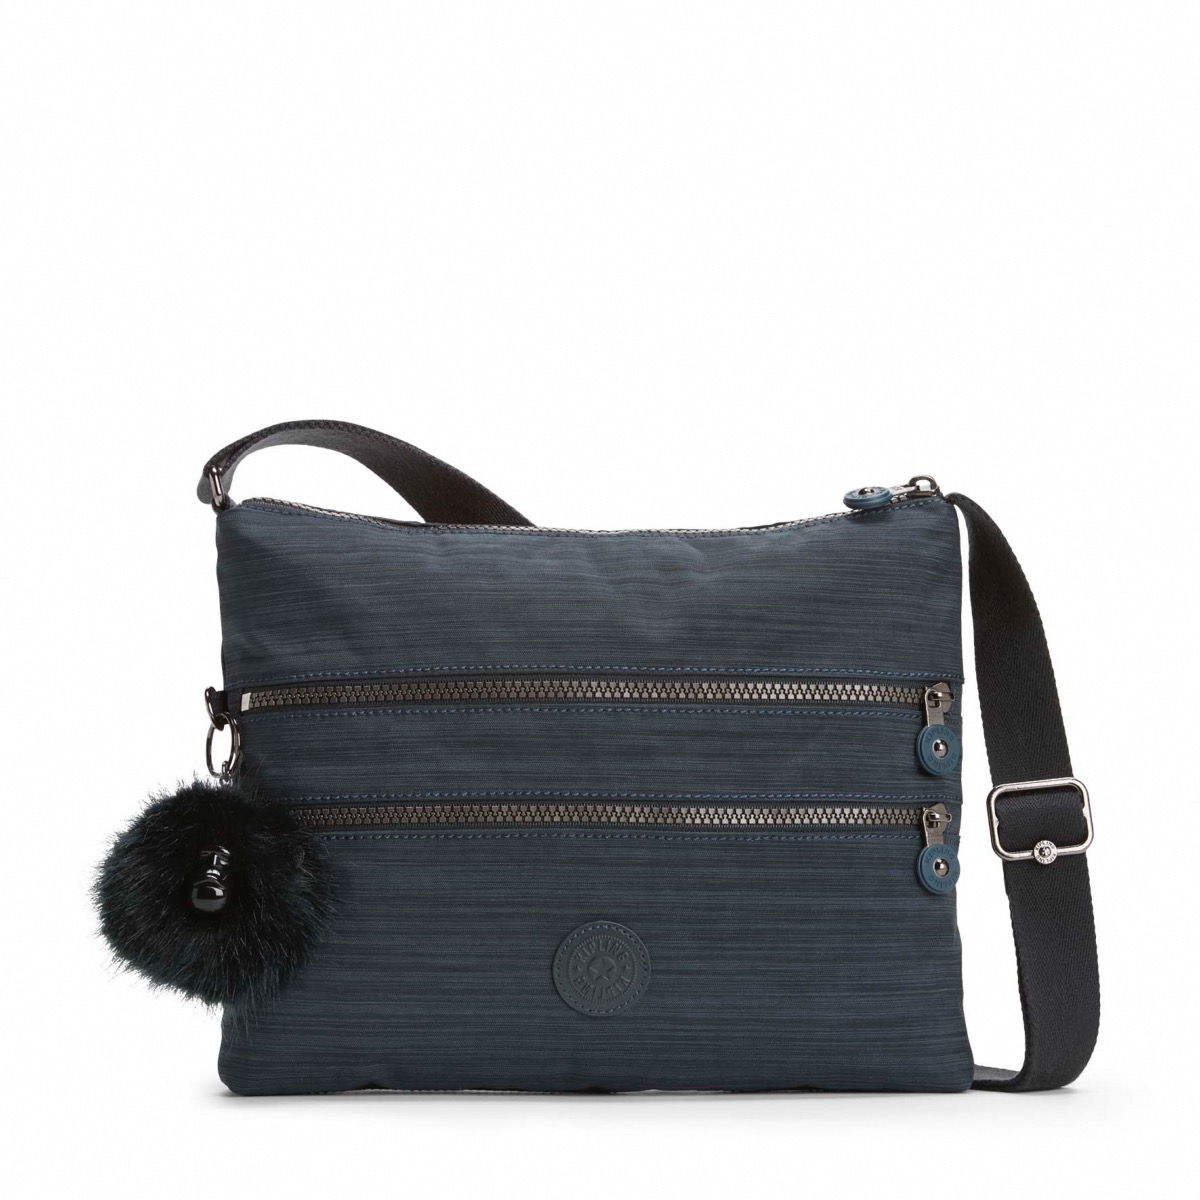 314d237c3a The Kipling Alvar features an neat organisation panel that keeps your  mobile phone and other important devices safely stored away, there are two  main ...